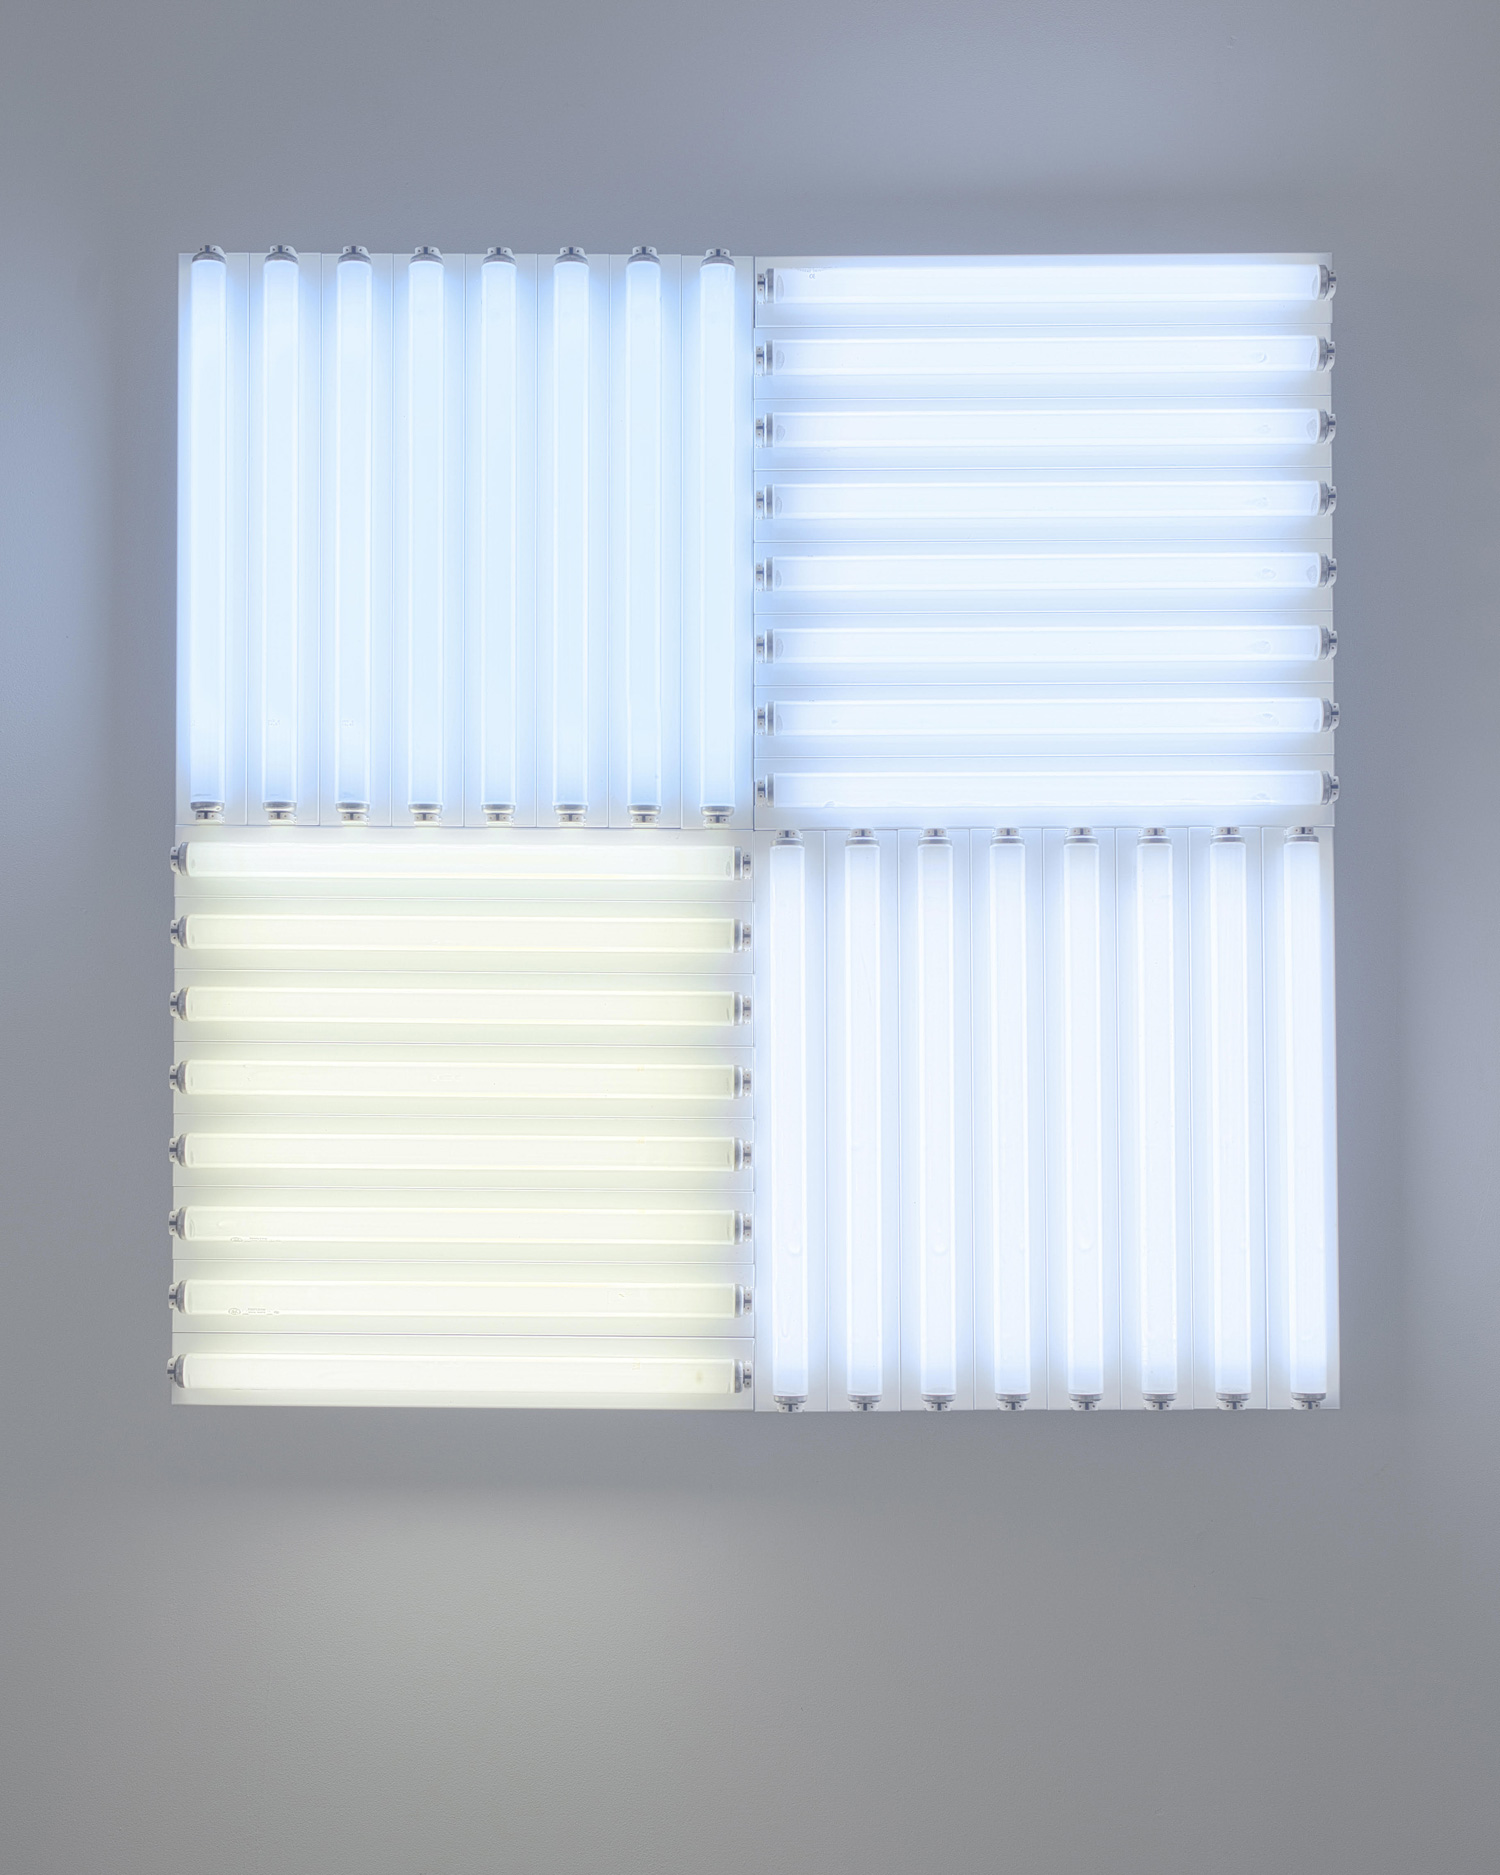 light-squares-cool.jpg